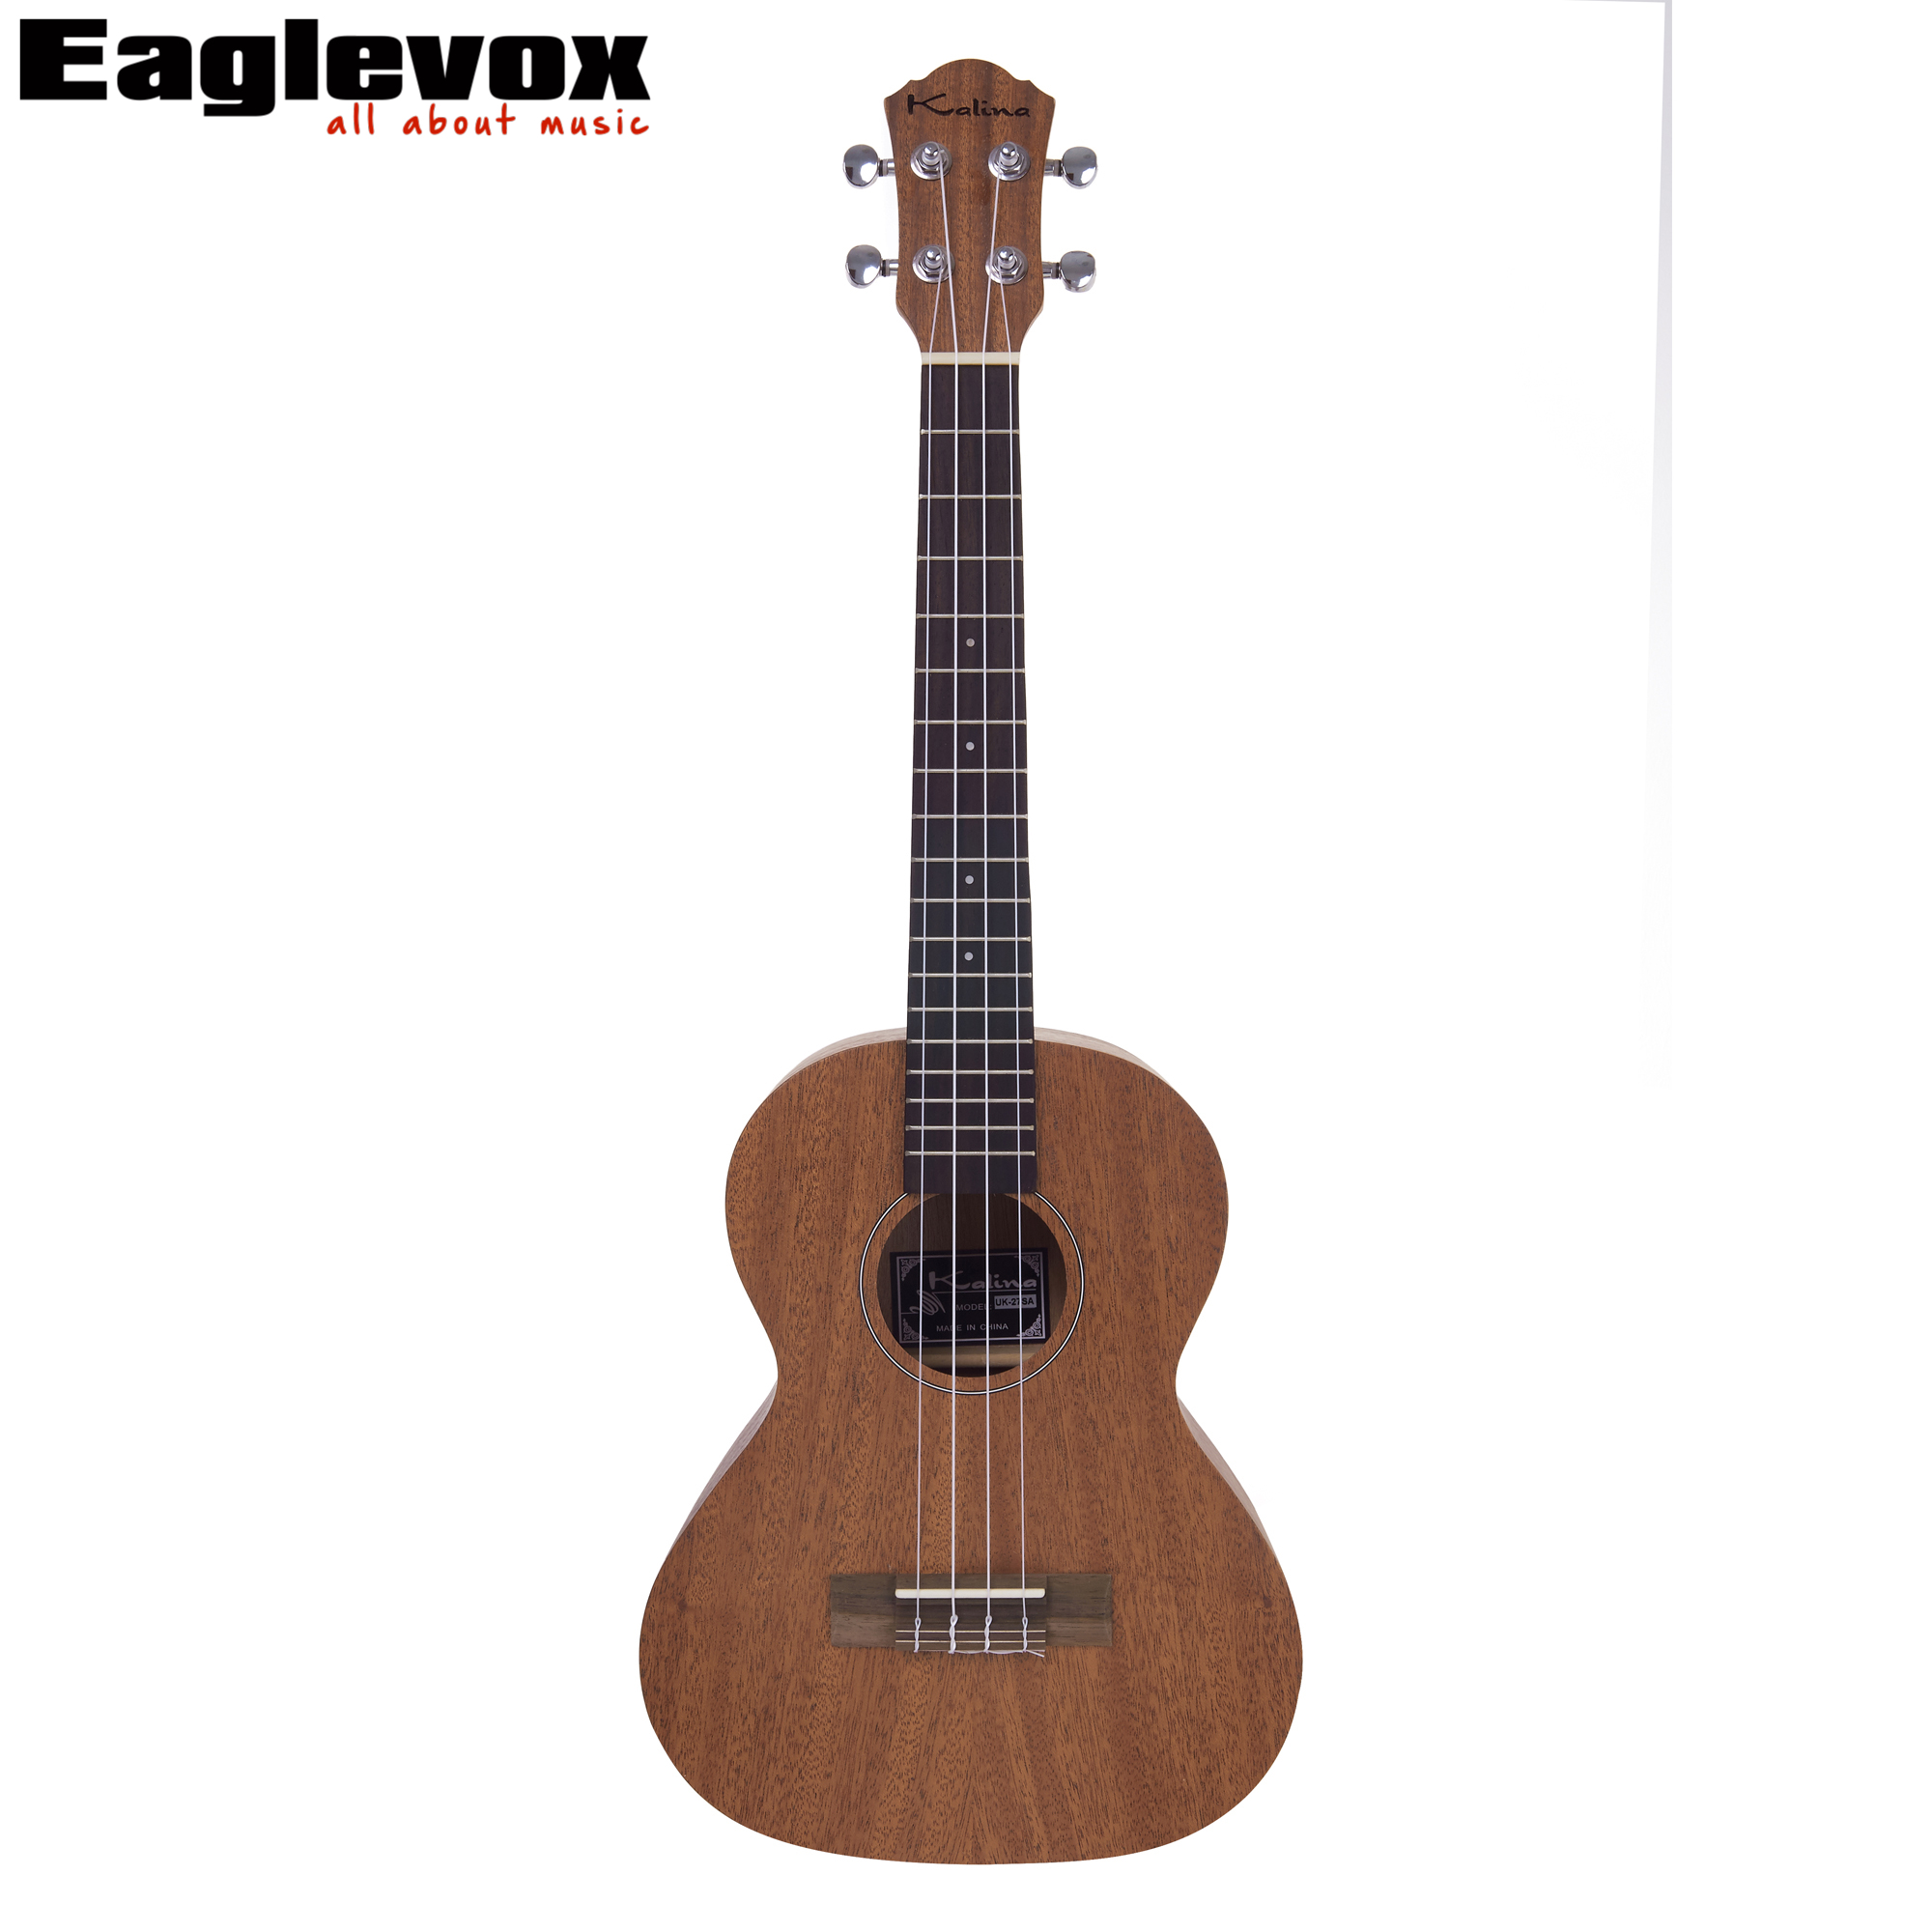 Tenor Ukulele 27 inch Mahogany Top Back Side Closed Knob Machine Heads 18 Frets pattern thicken waterproof soprano concert tenor ukulele bag case backpack 21 23 24 26 inch ukelele accessories guitar parts gig